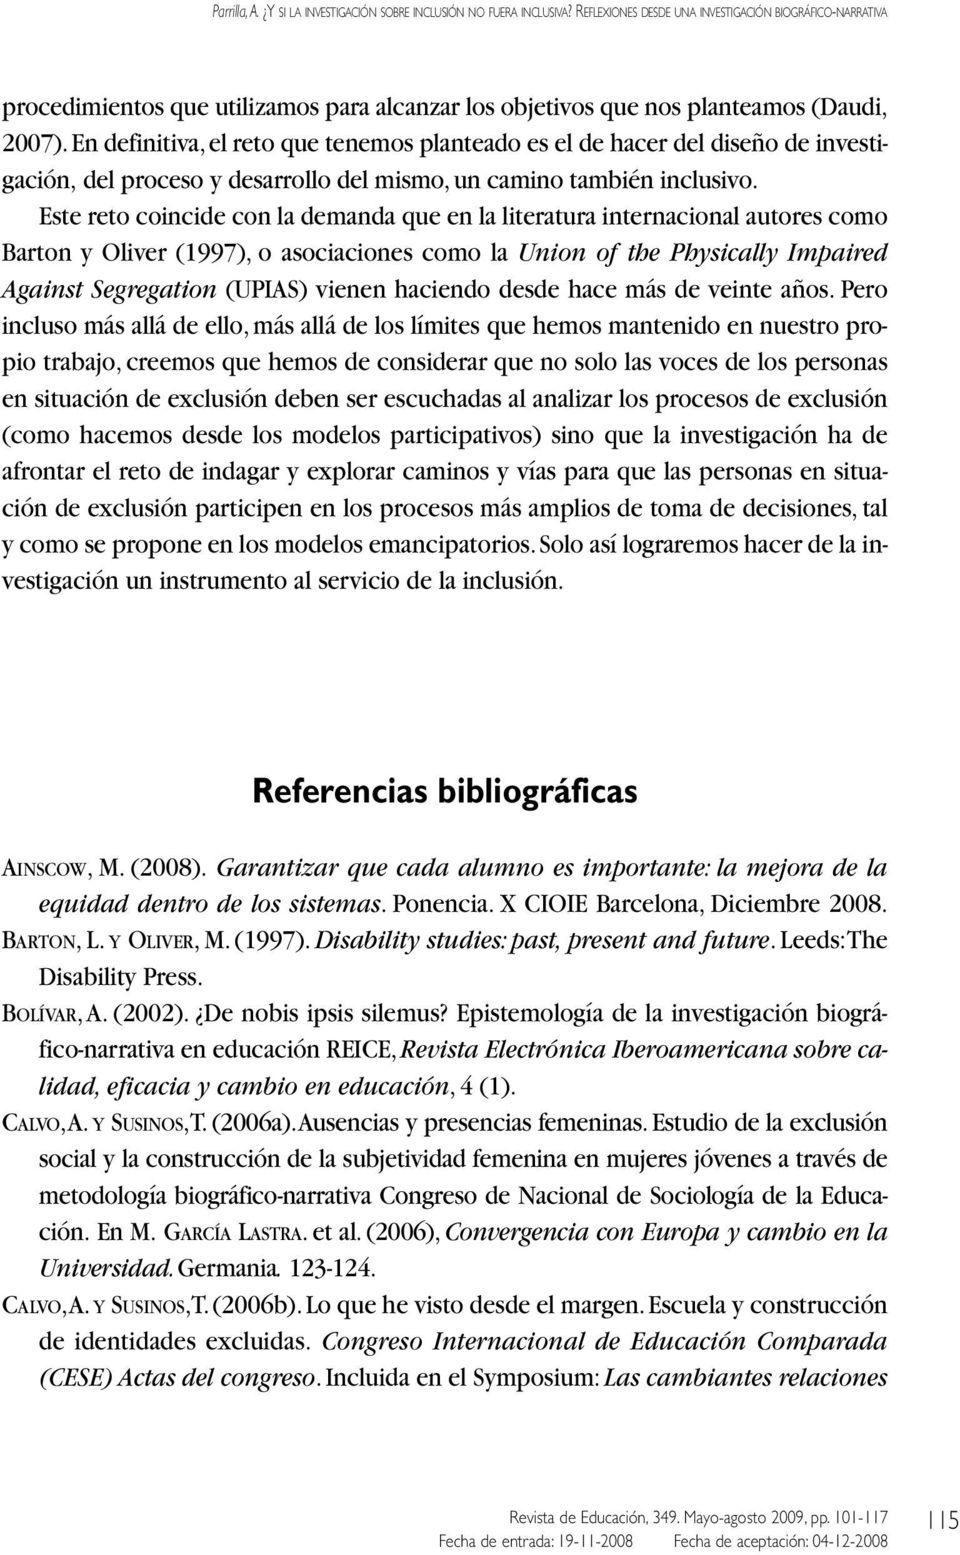 Este reto coincide con la demanda que en la literatura internacional autores como Barton y Oliver (1997), o asociaciones como la Union of the Physically Impaired Against Segregation (UPIAS) vienen